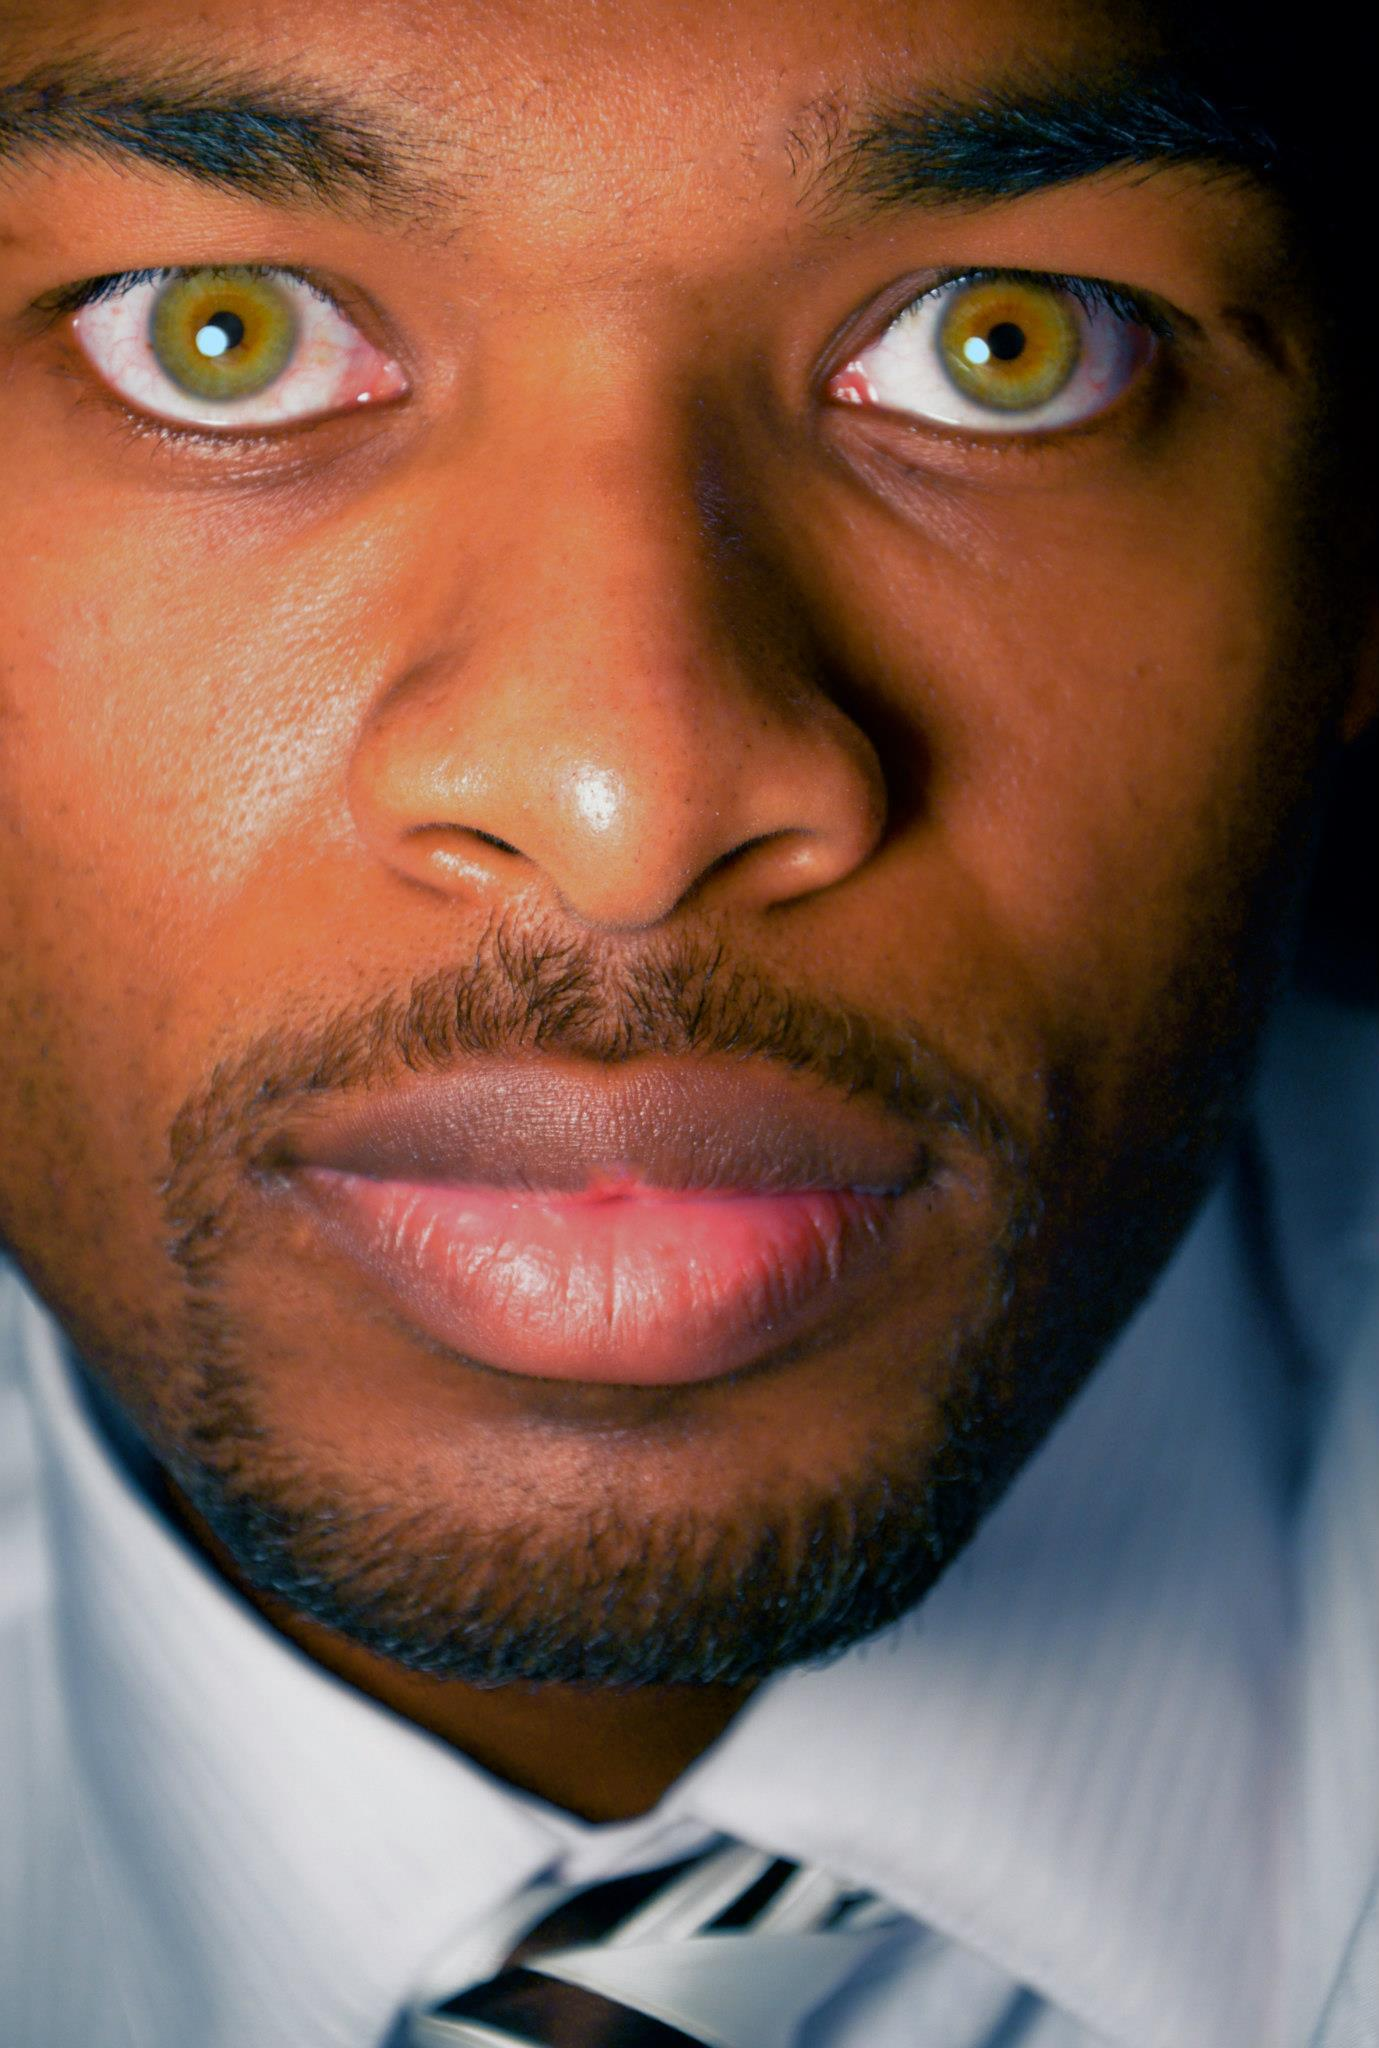 Green Eyes Black Male Guy Counseling